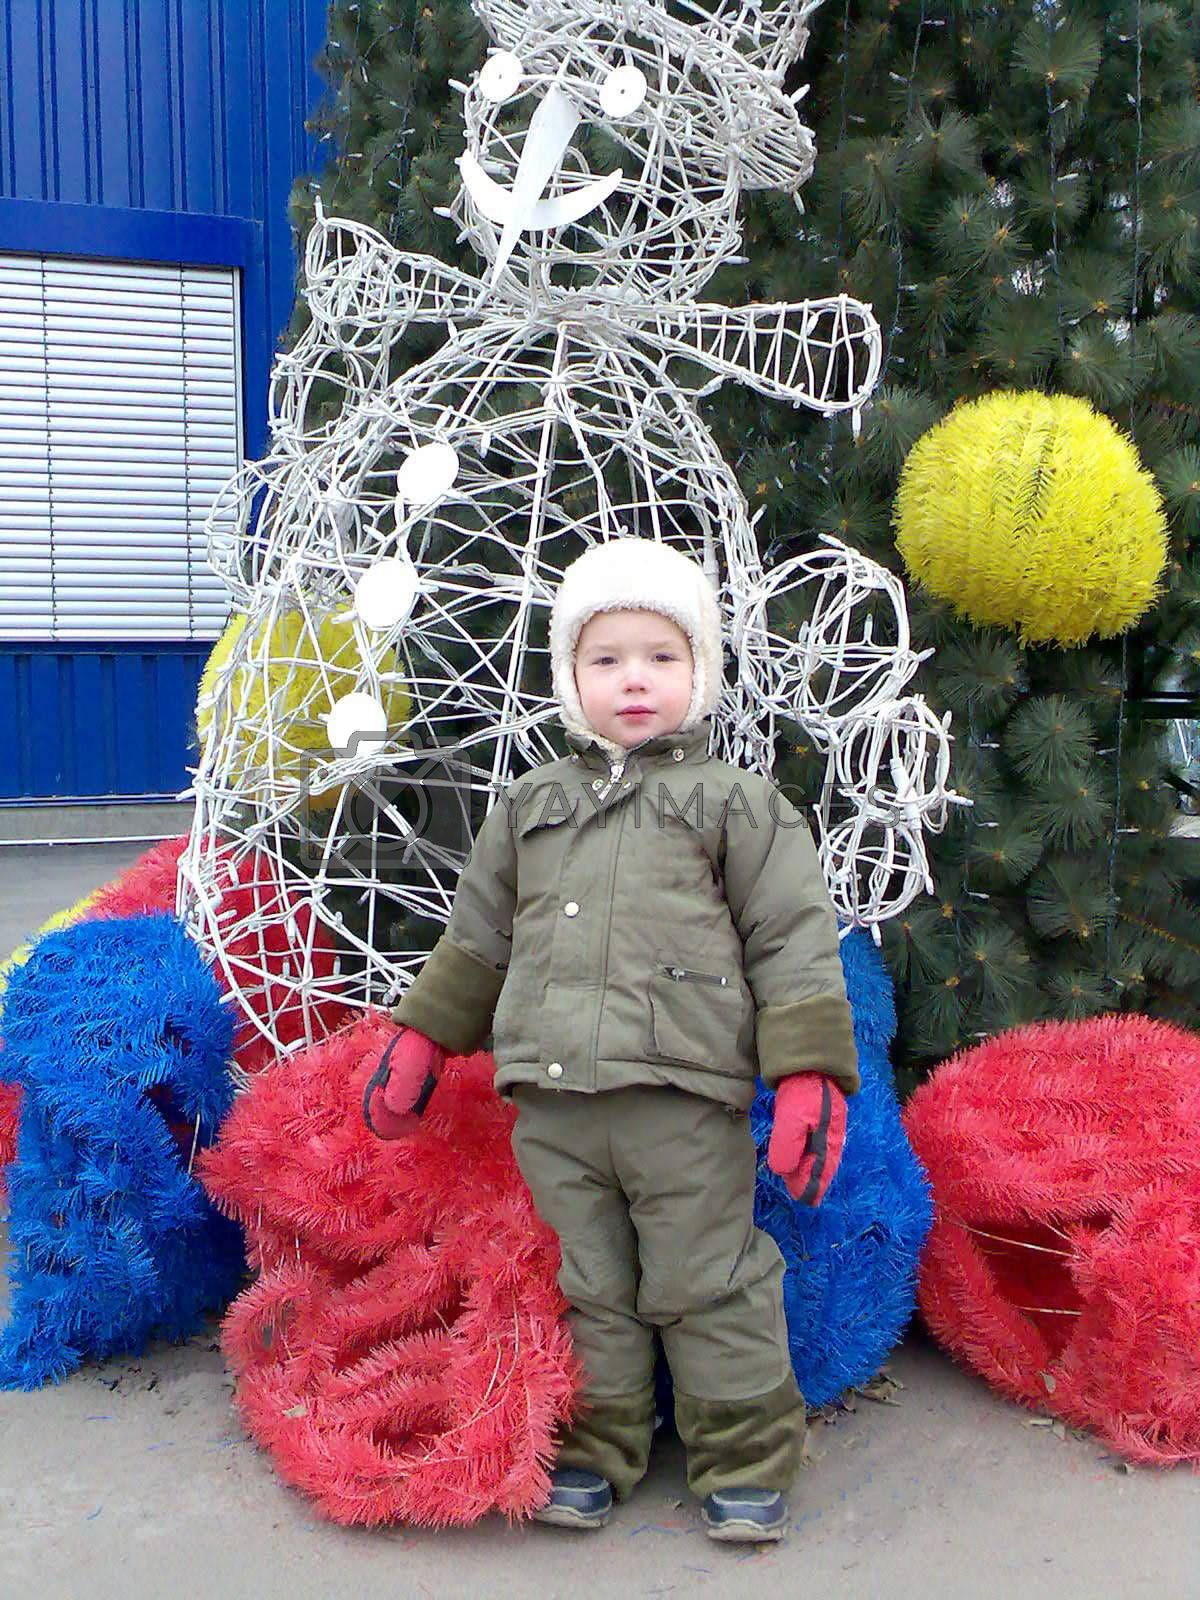 The kid next to the Christmas Tree